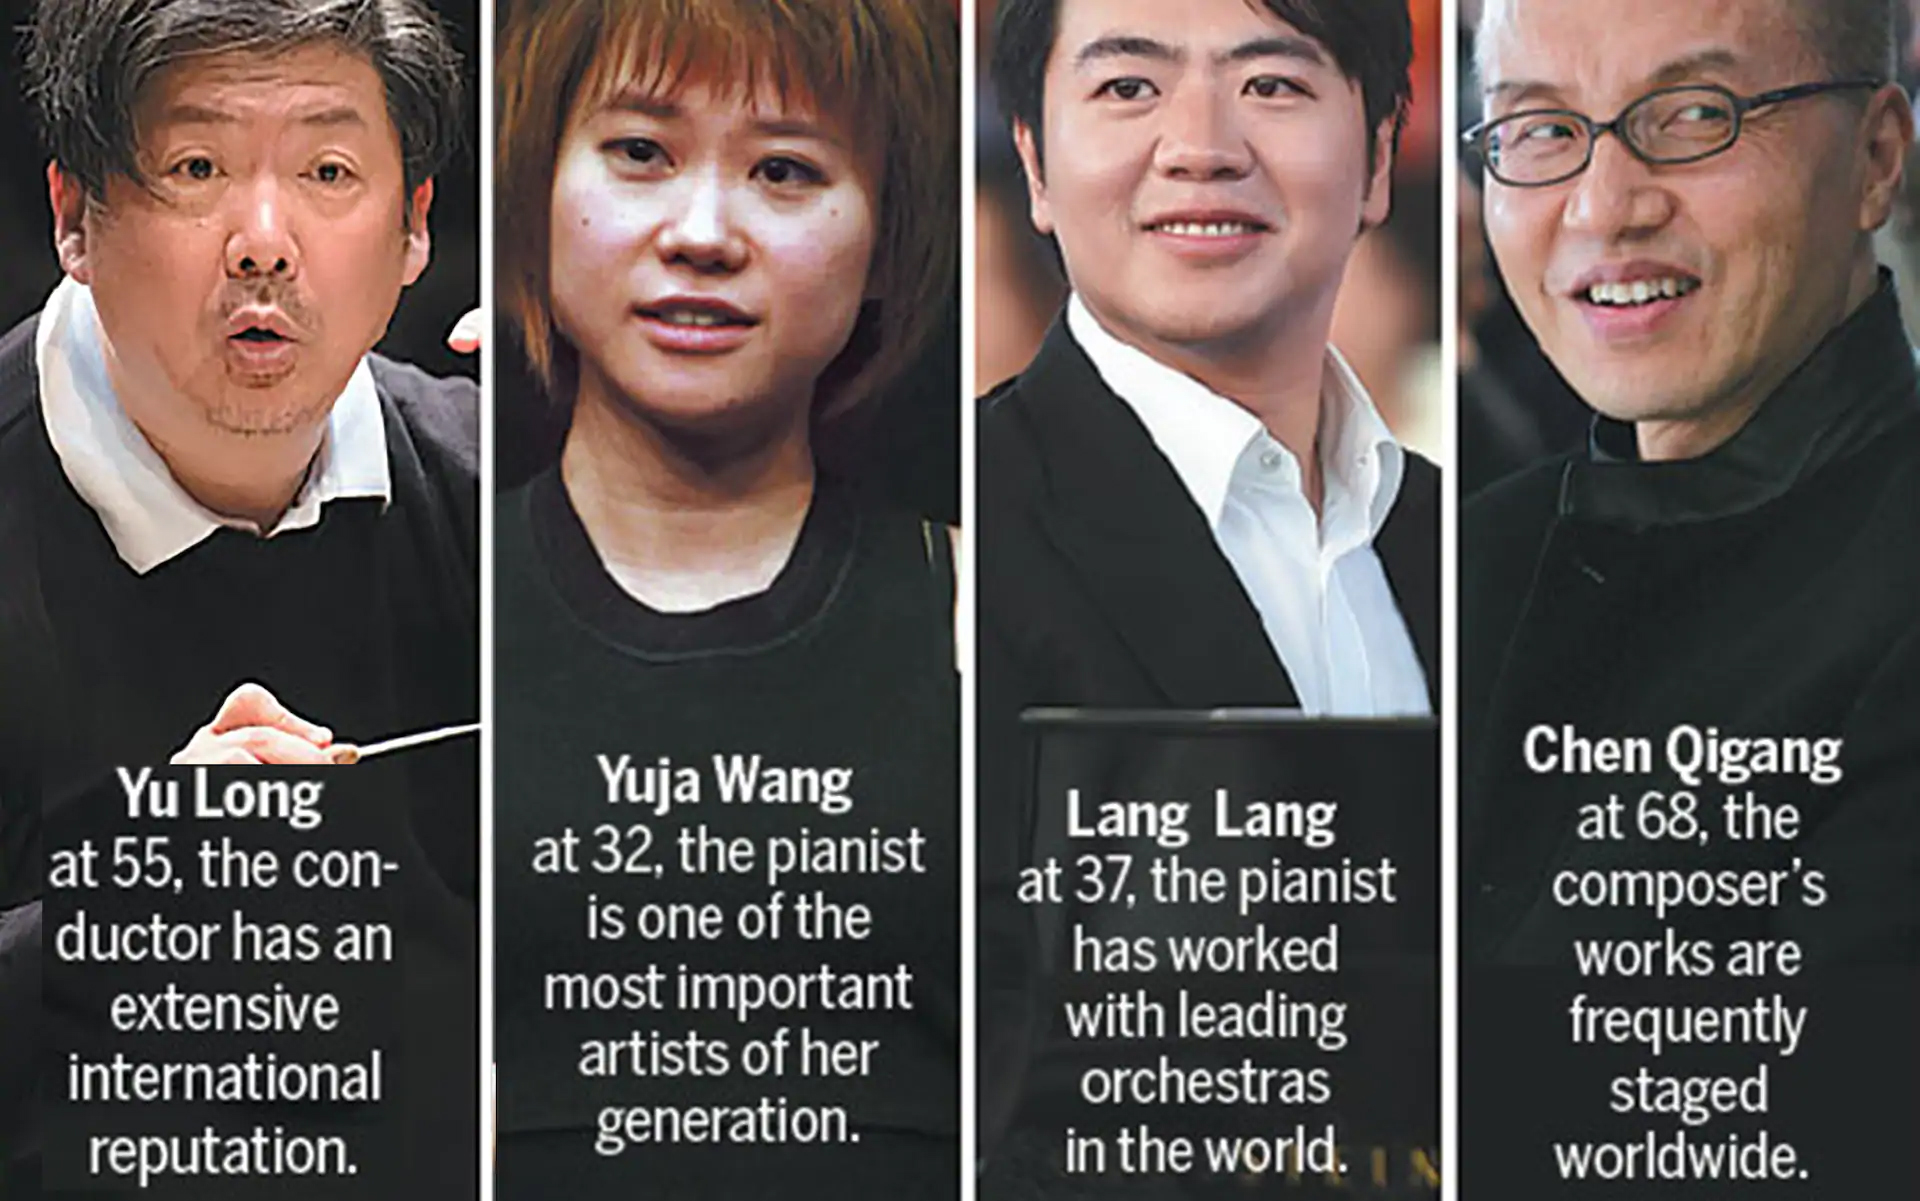 Classical music performers strike resonant notes at home and abroad